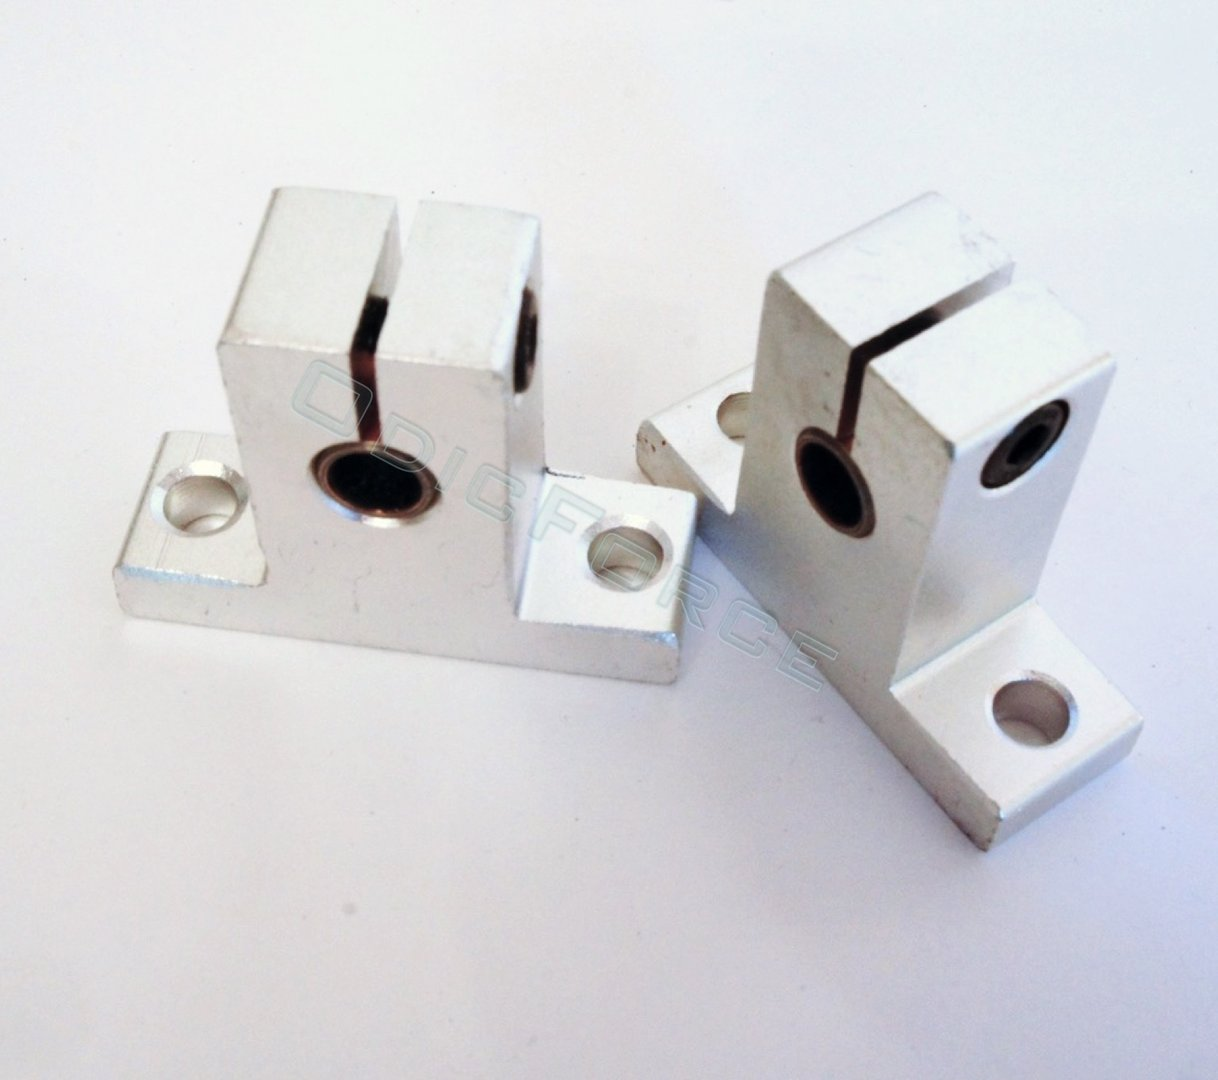 Alloy Module Holder with Insert for 6mm Modules